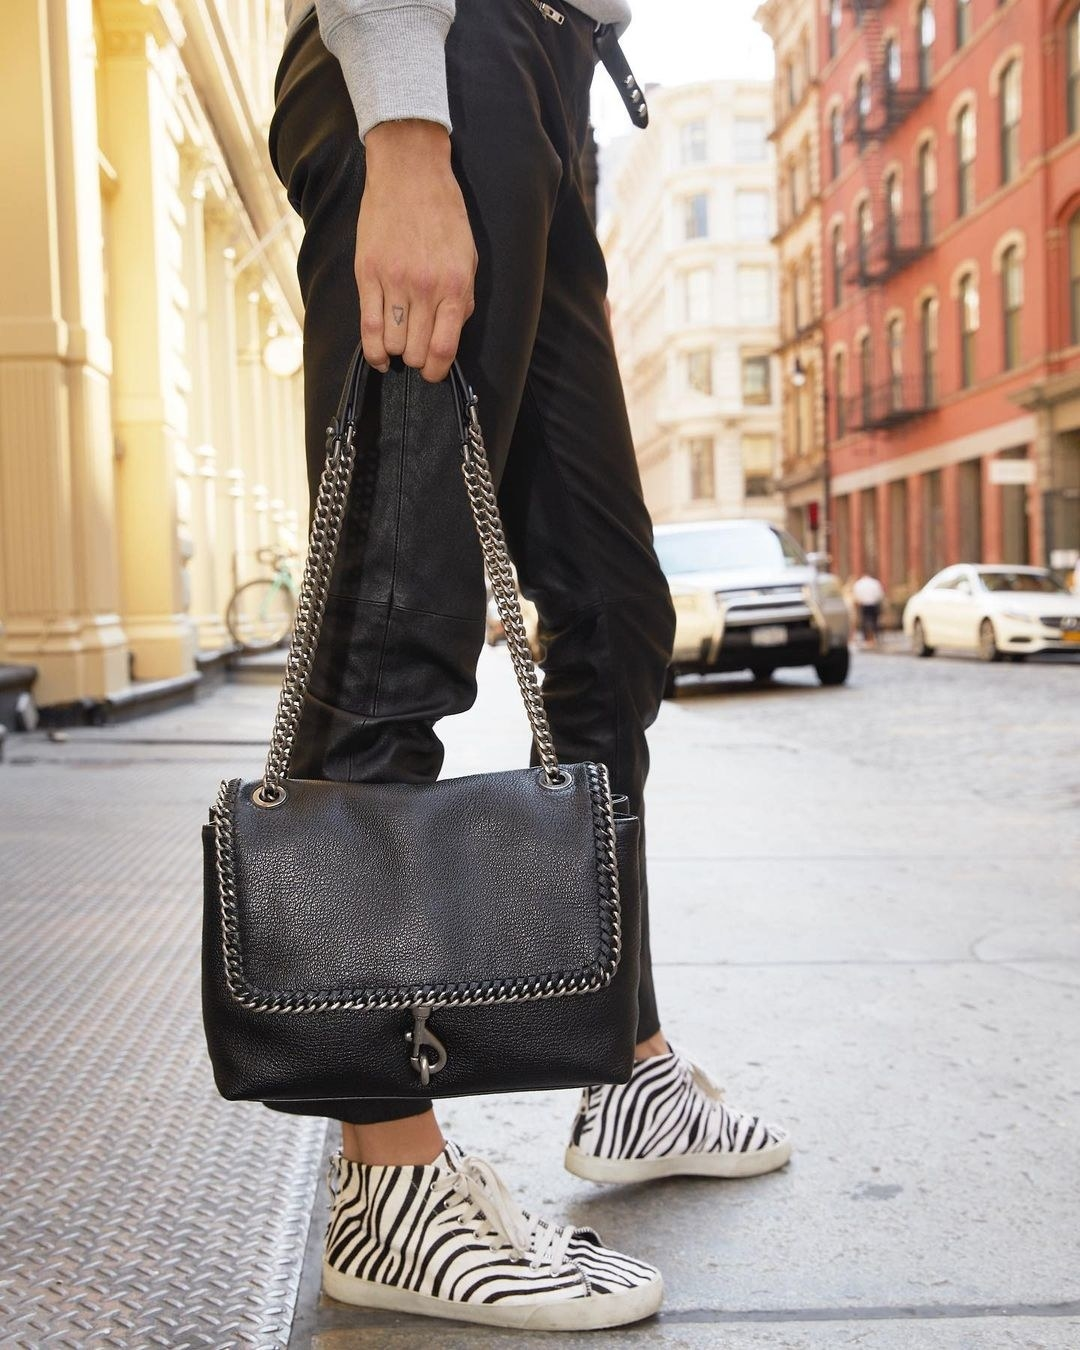 a model holding a leather bag with chain detailing